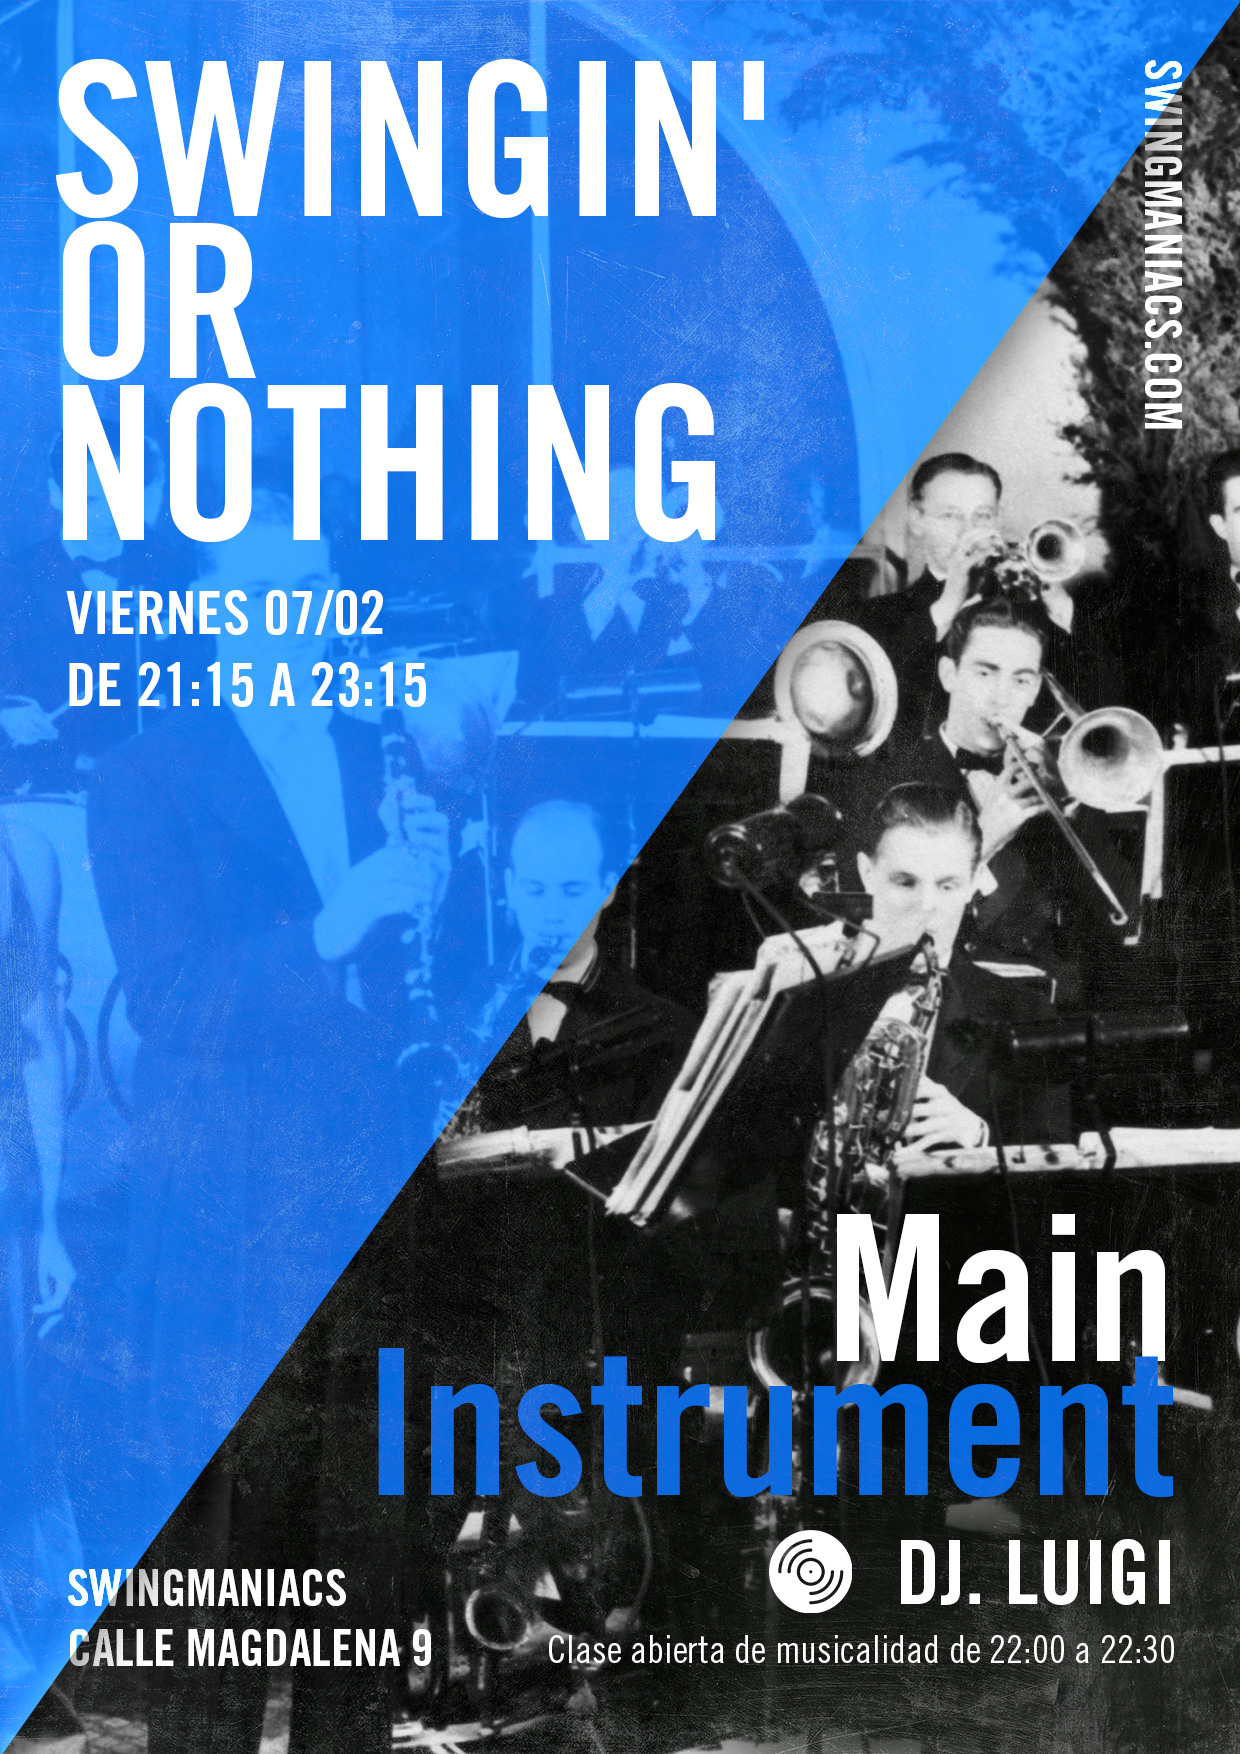 Swingin' or Nothing - Main Instrument!